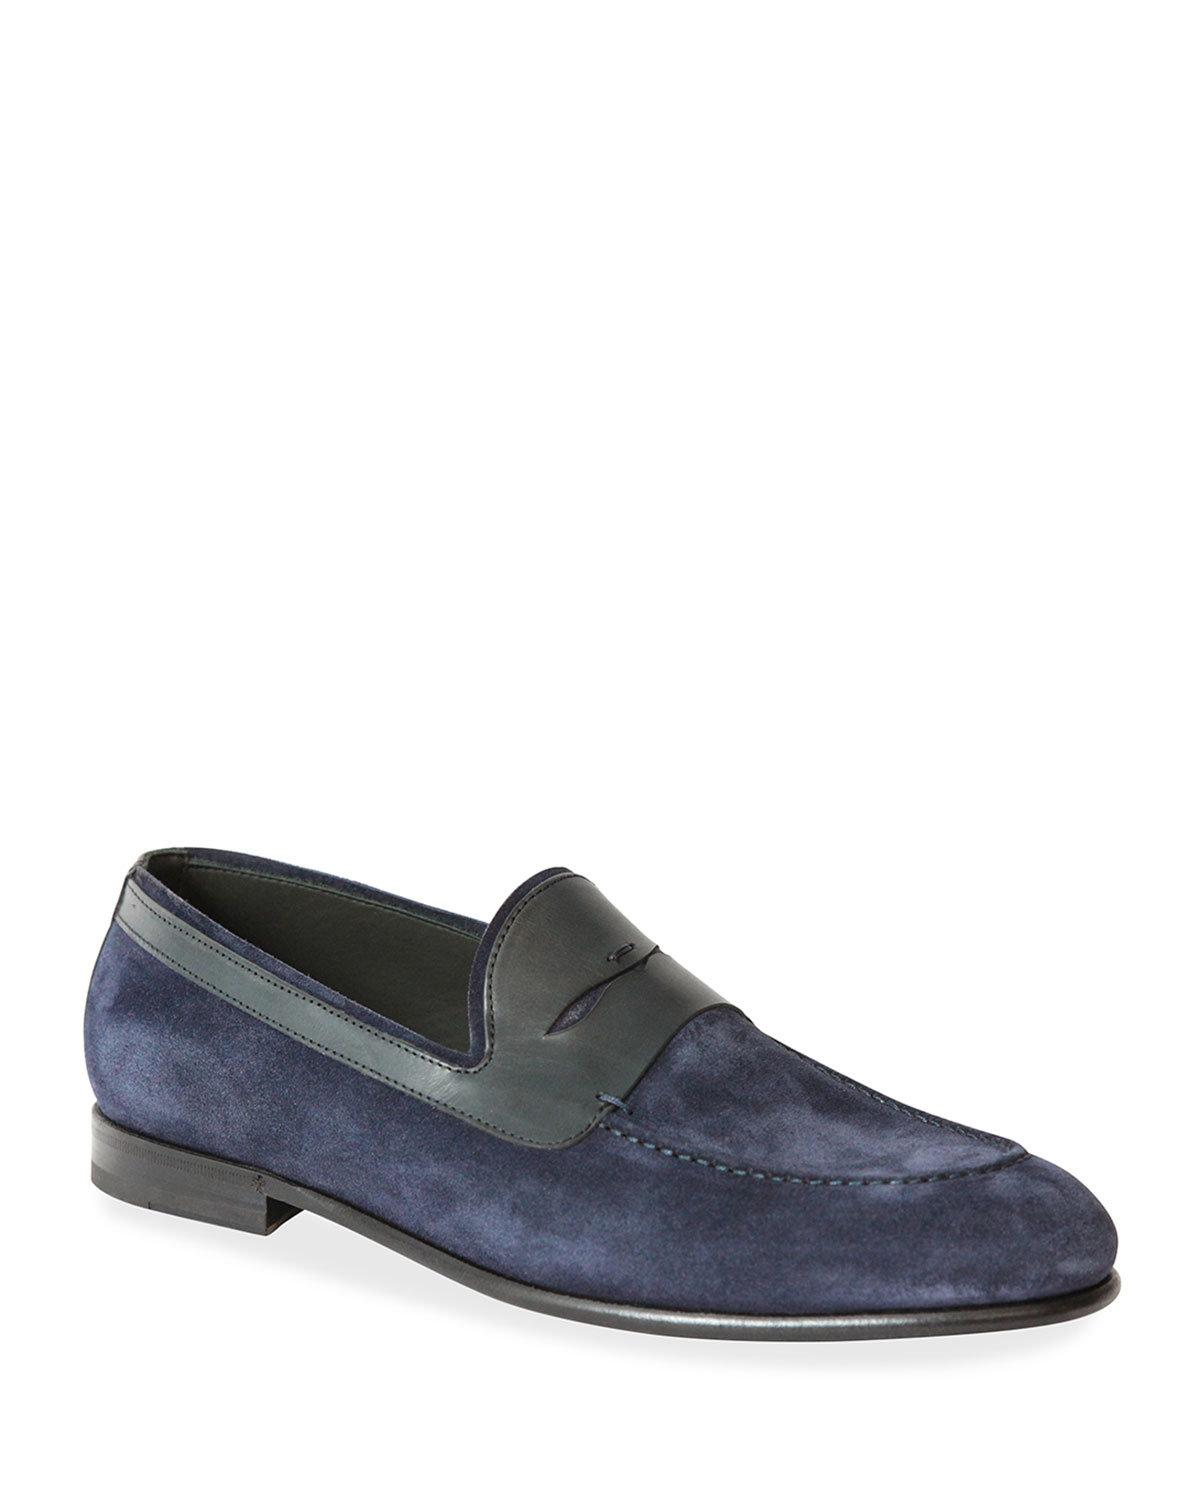 Men's Suede Penny Loafers, Blue